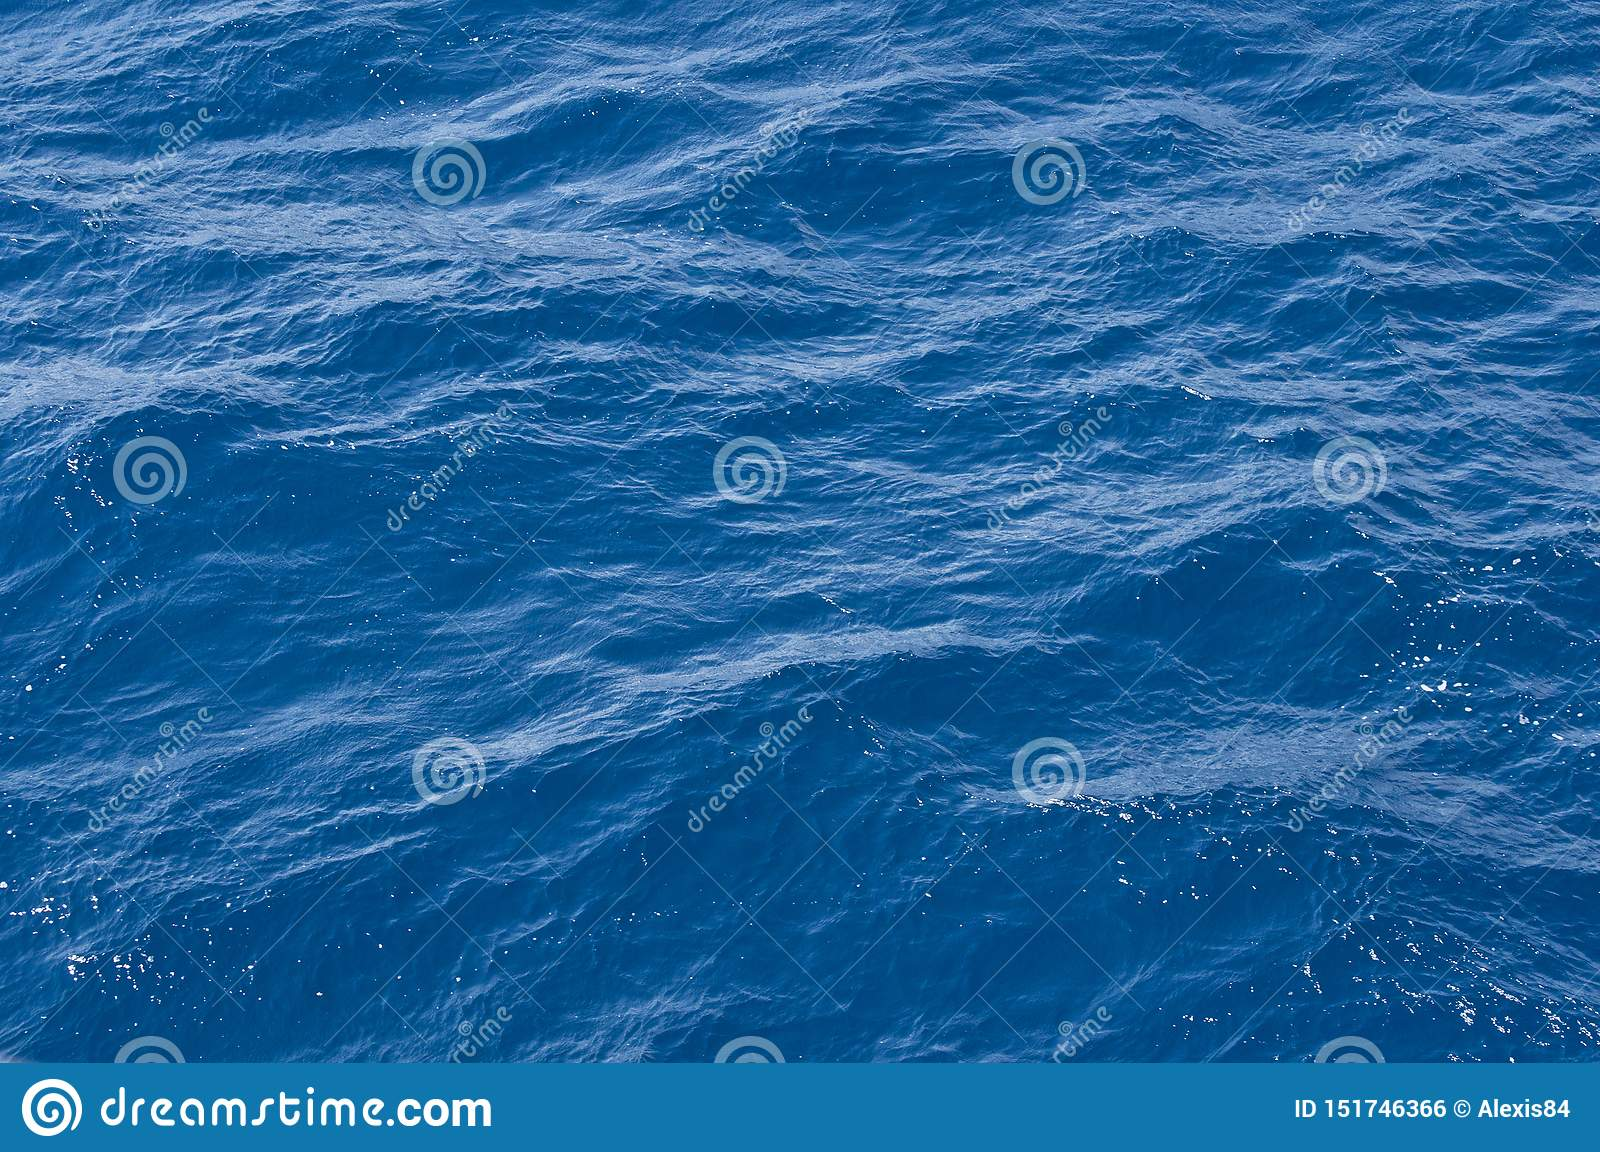 1 498 972 Ocean Background Photos Free Royalty Free Stock Photos From Dreamstime